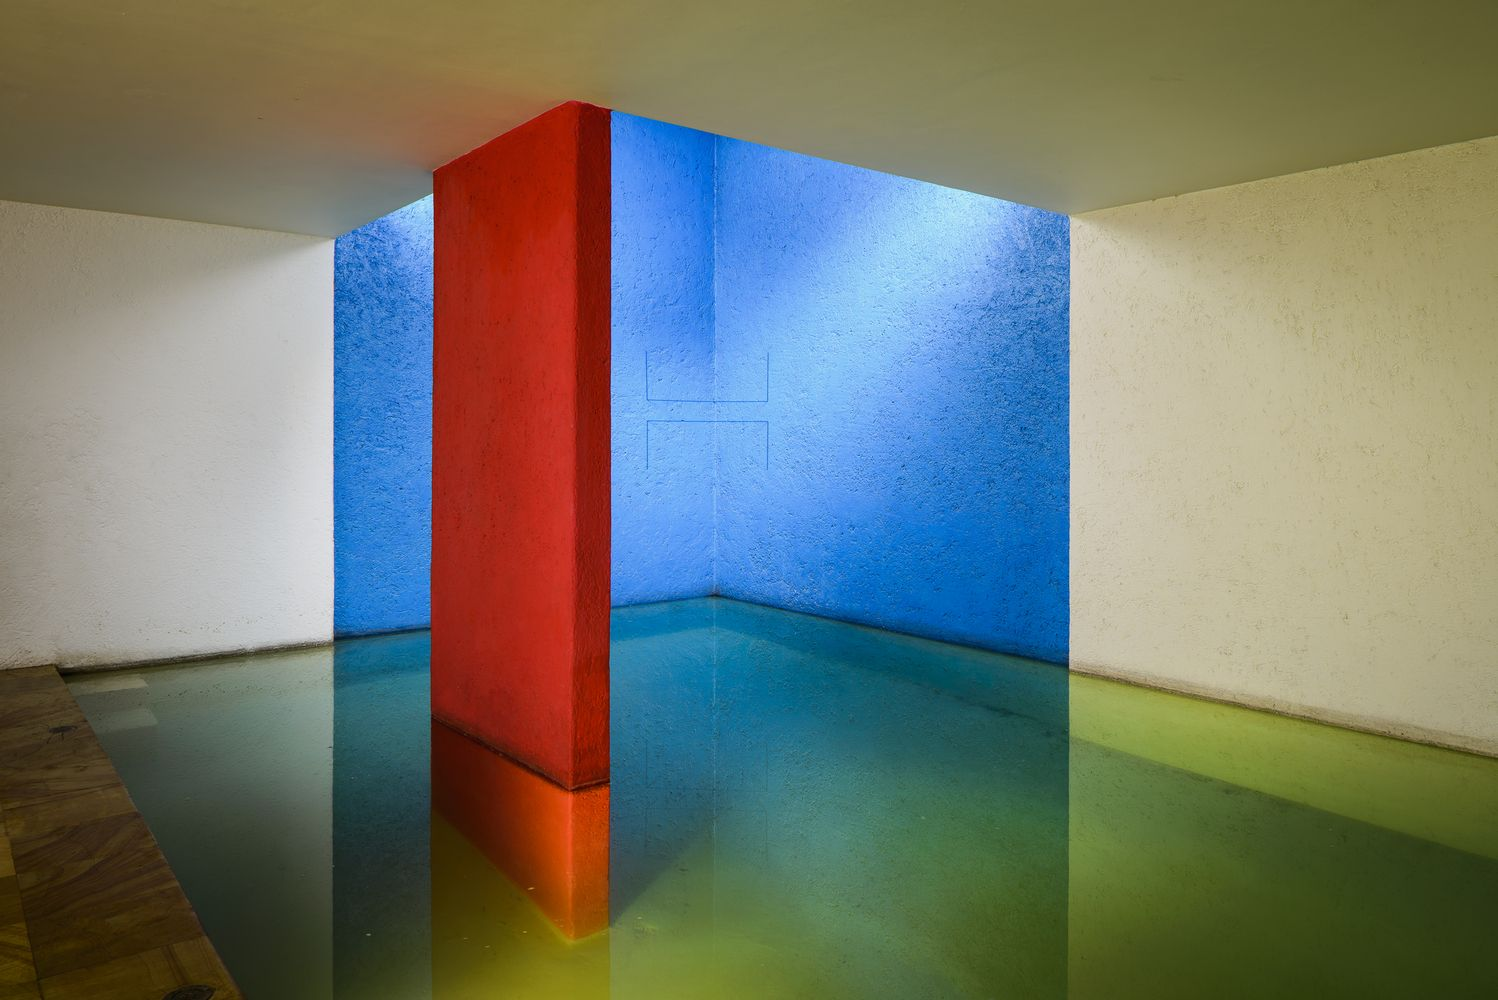 Gallery Of How Luis Barragan Used Light To Make Us See Color 1 Architettura Geometrico Moderno